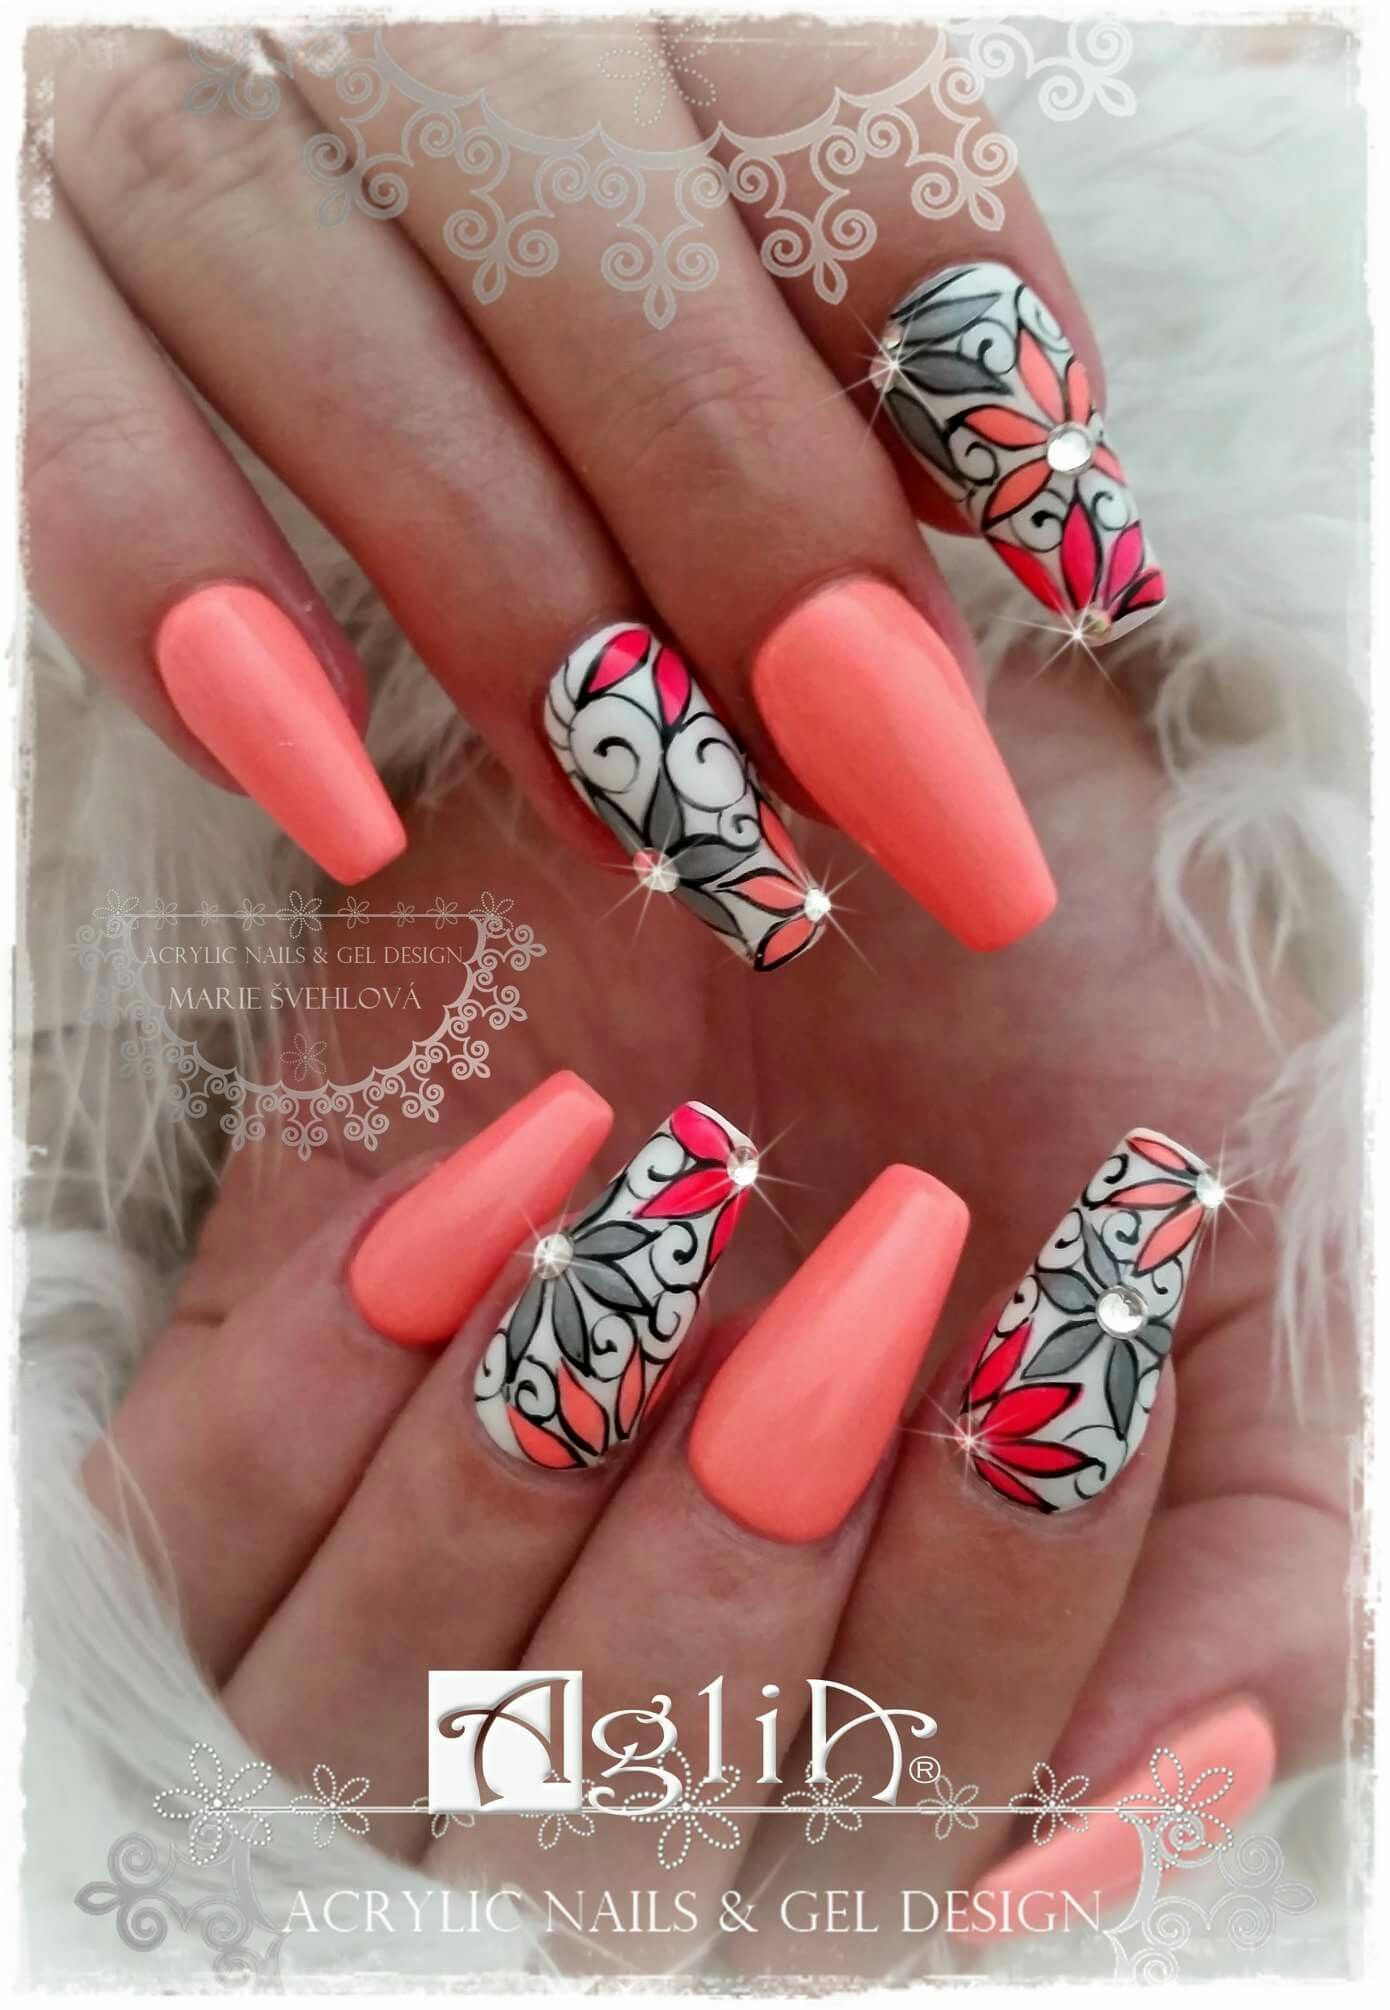 Acrylic Nails Gel Design Summer Time Nehty